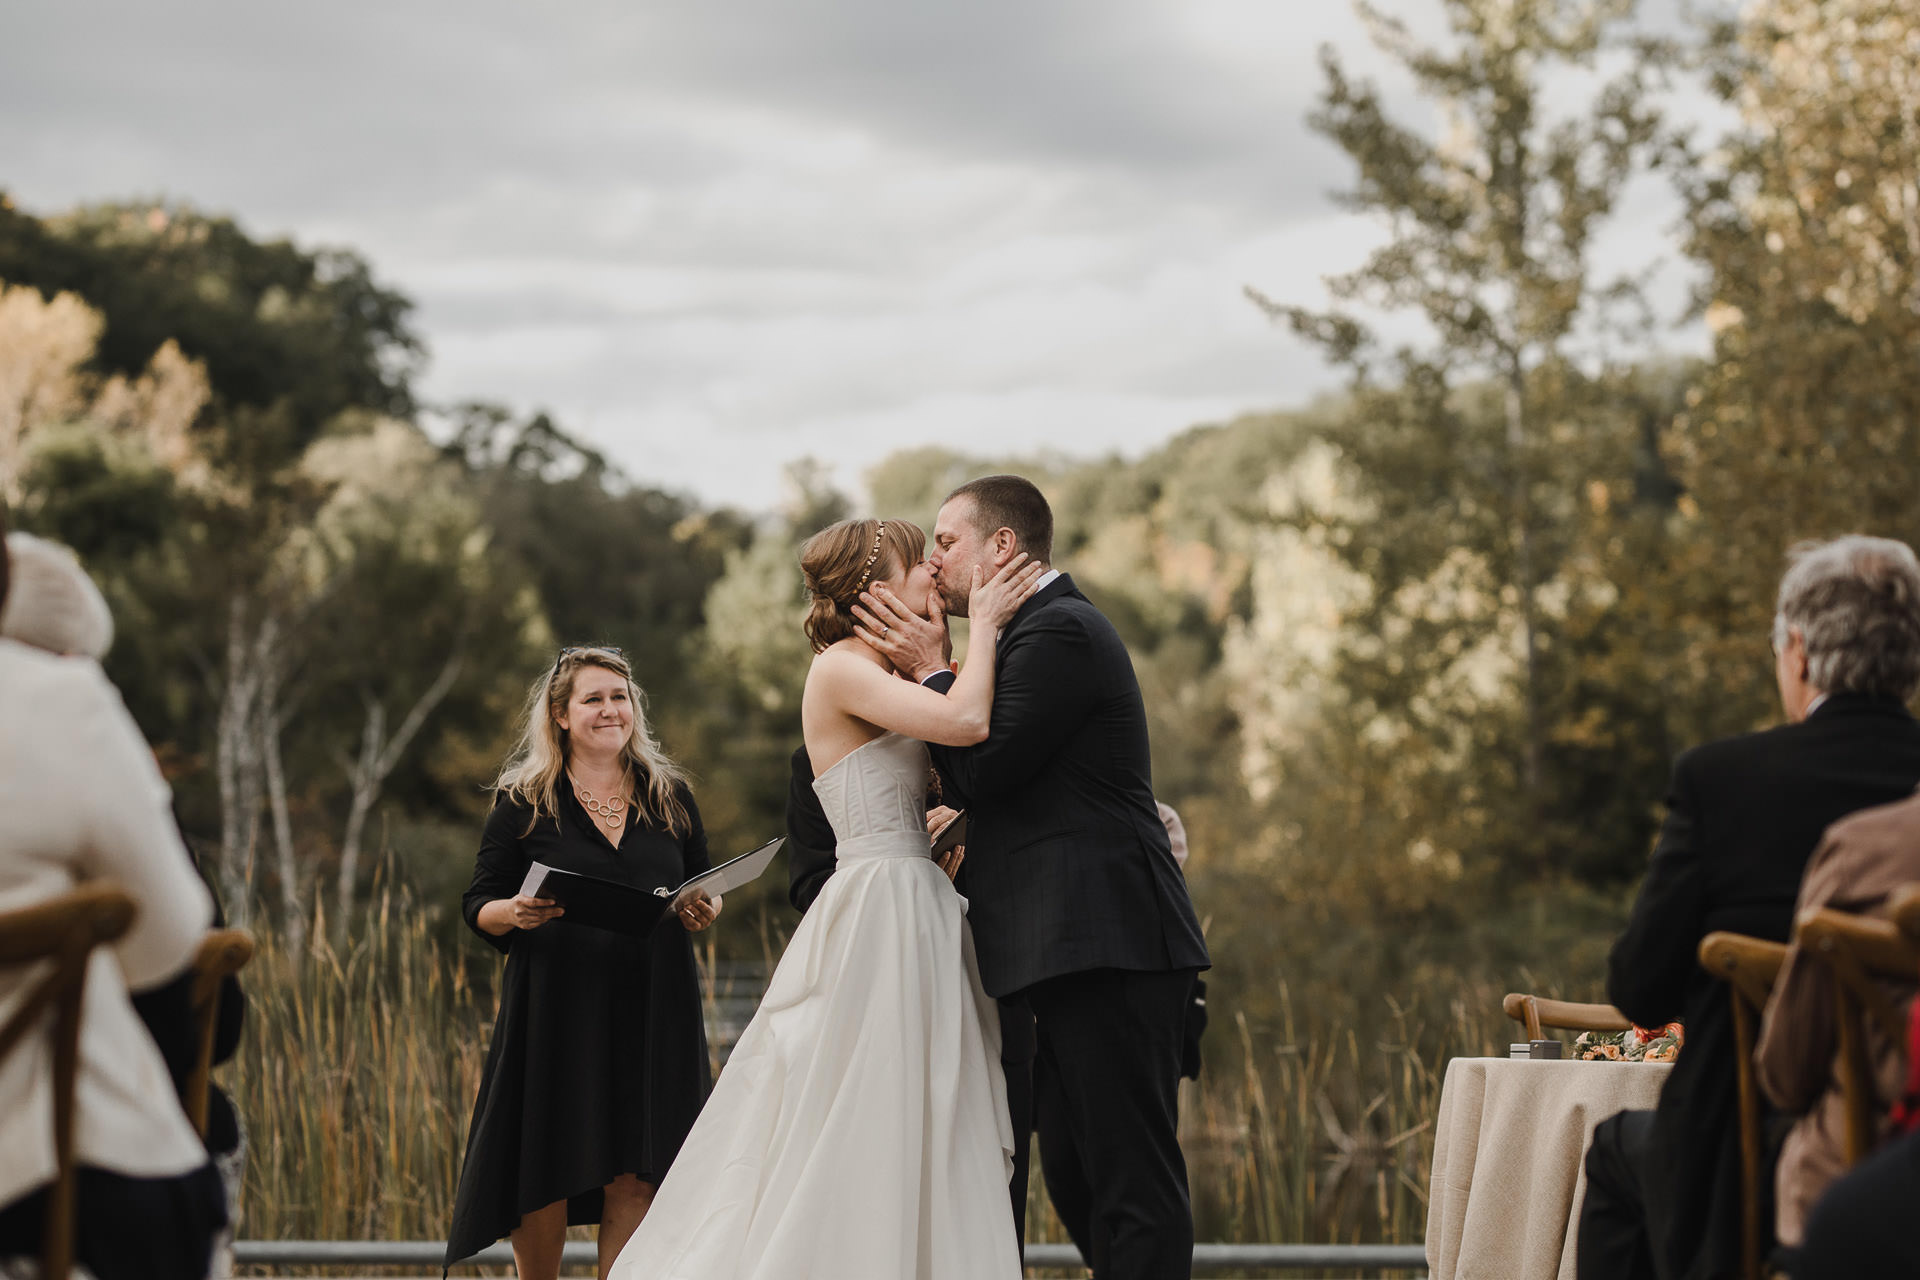 Evergreen Brickworks wedding photographer - the kiss